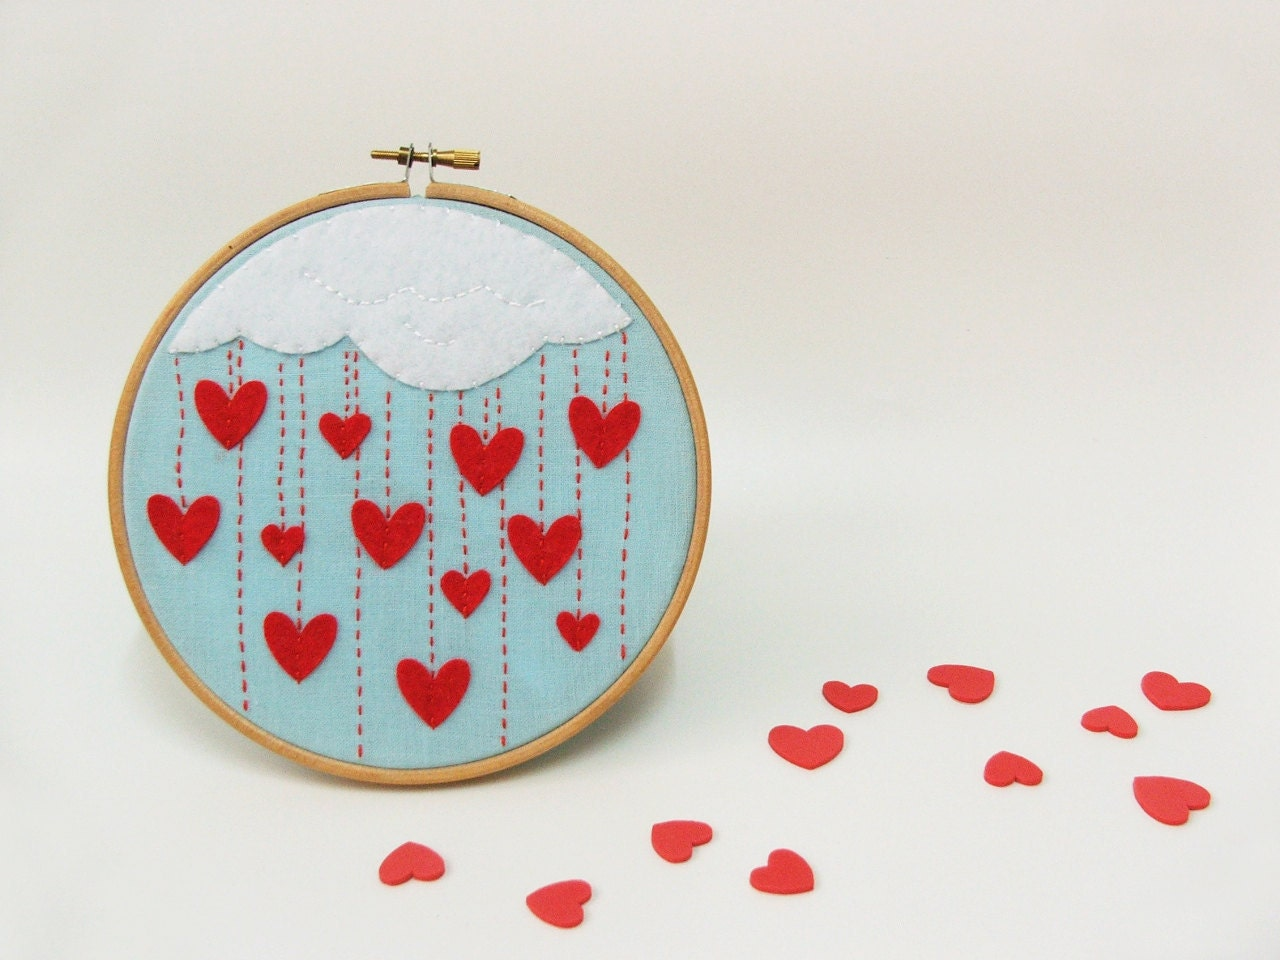 Embroidery hoop wall art cloudy rain of hearts made to